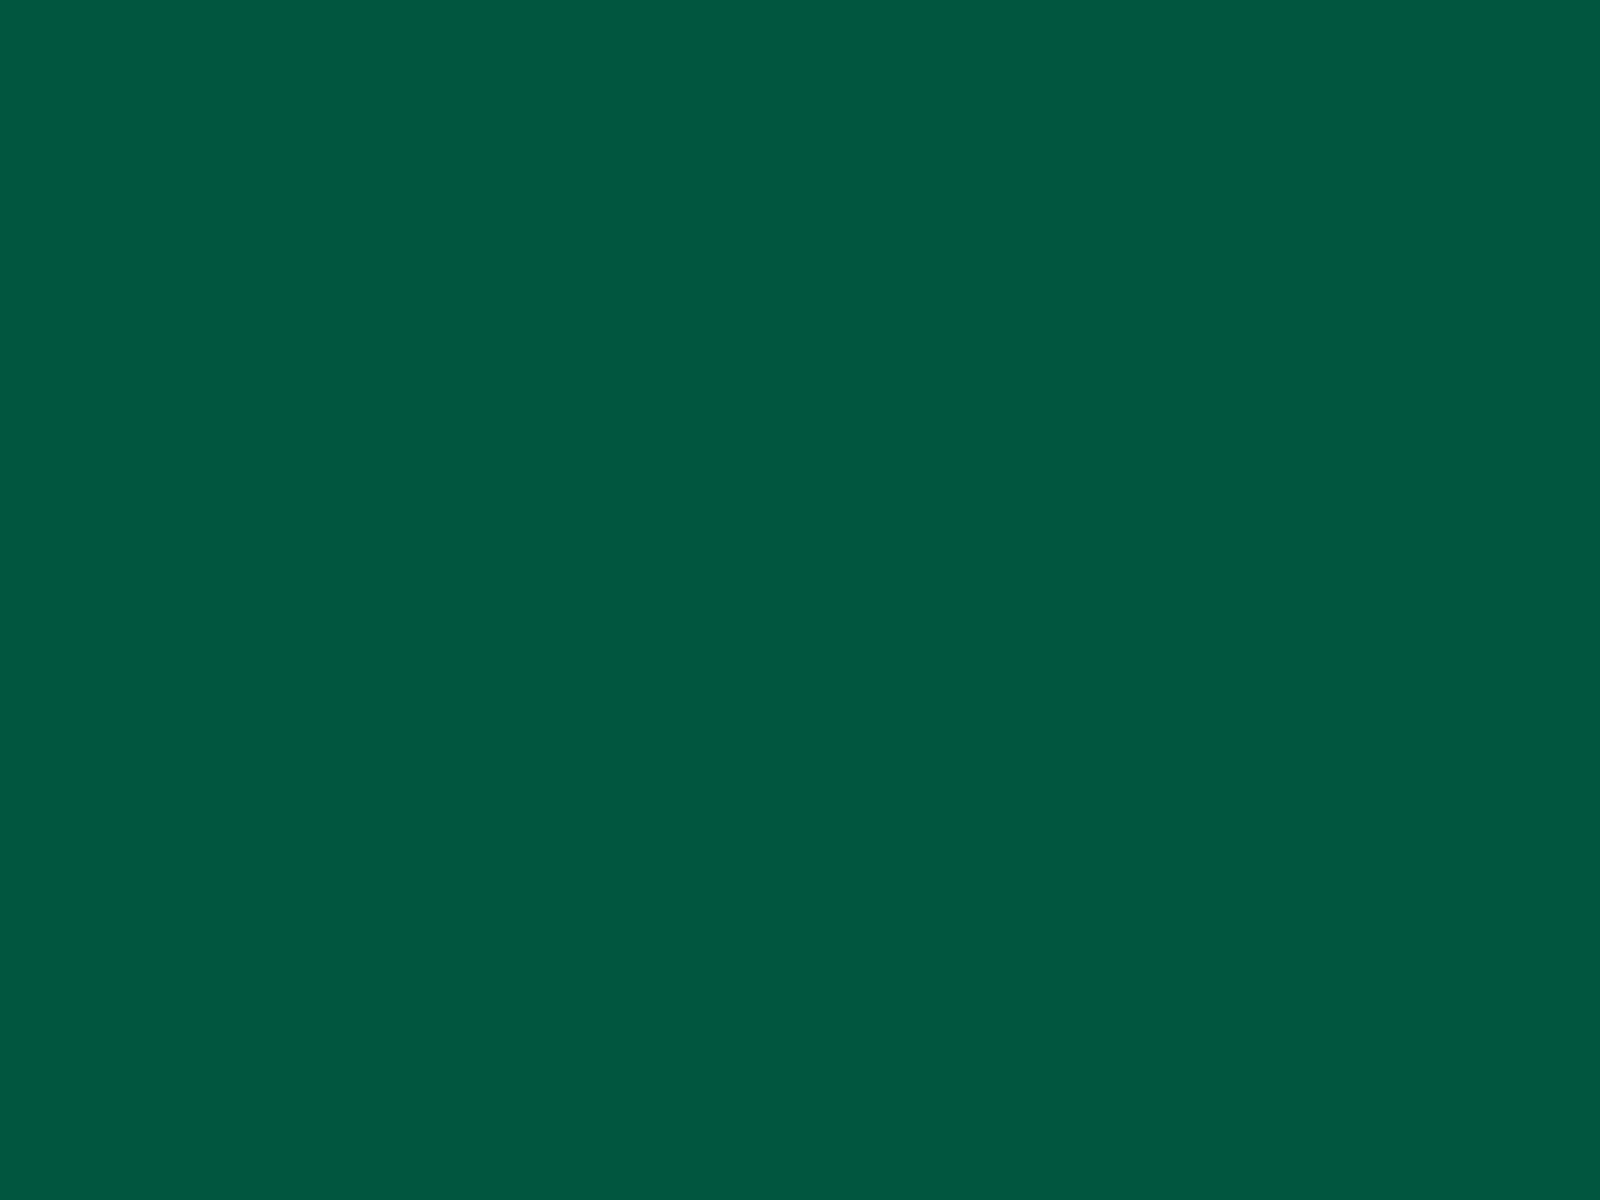 1600x1200 Sacramento State Green Solid Color Background